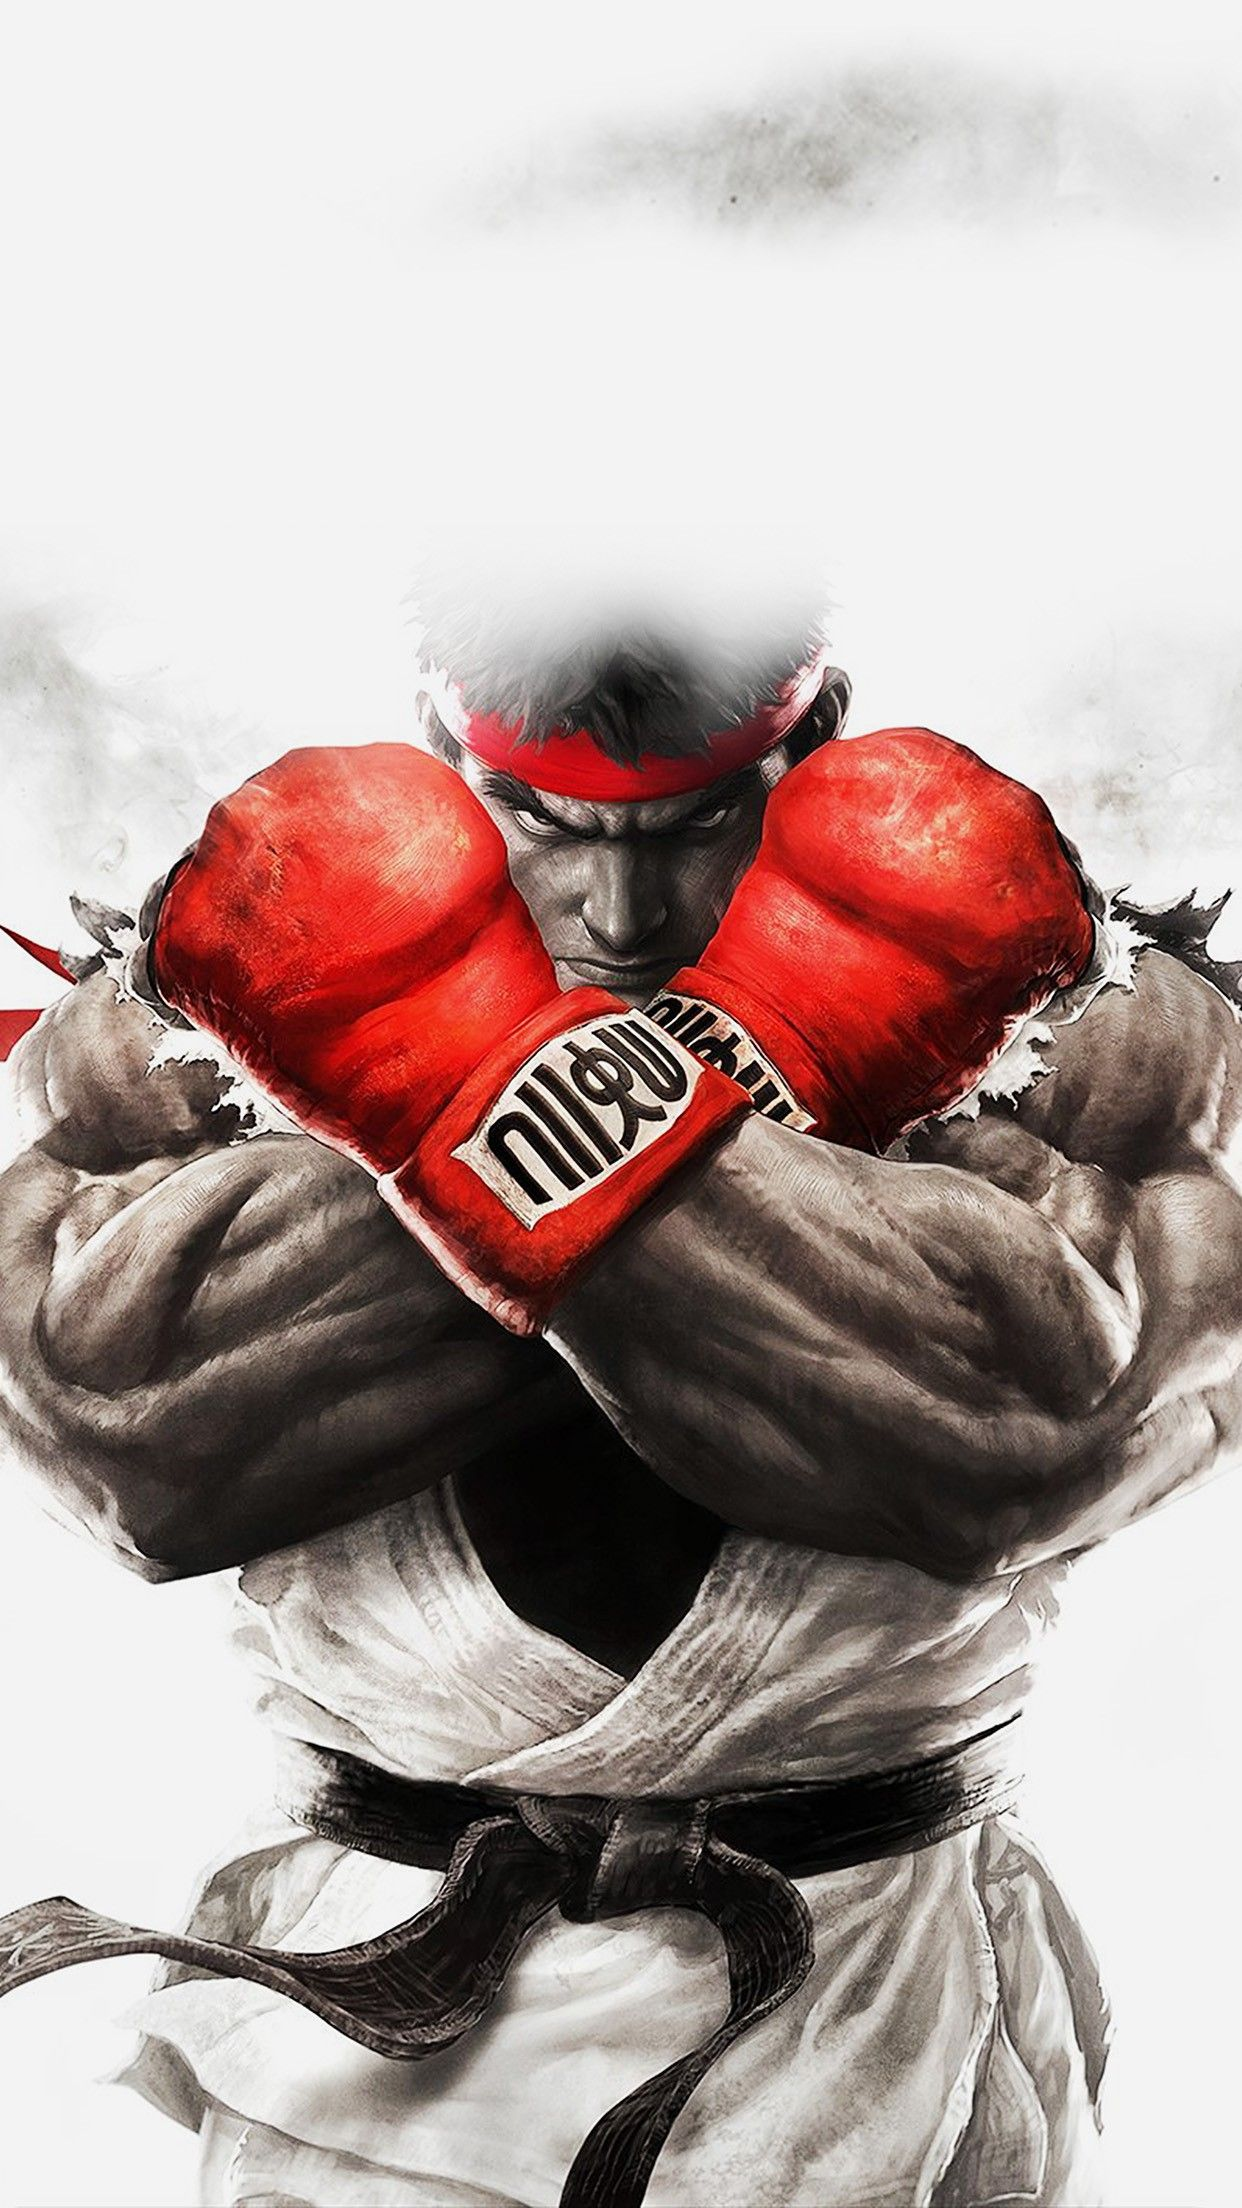 Street Fighter Illustration Game Smartphone Wallpaper and